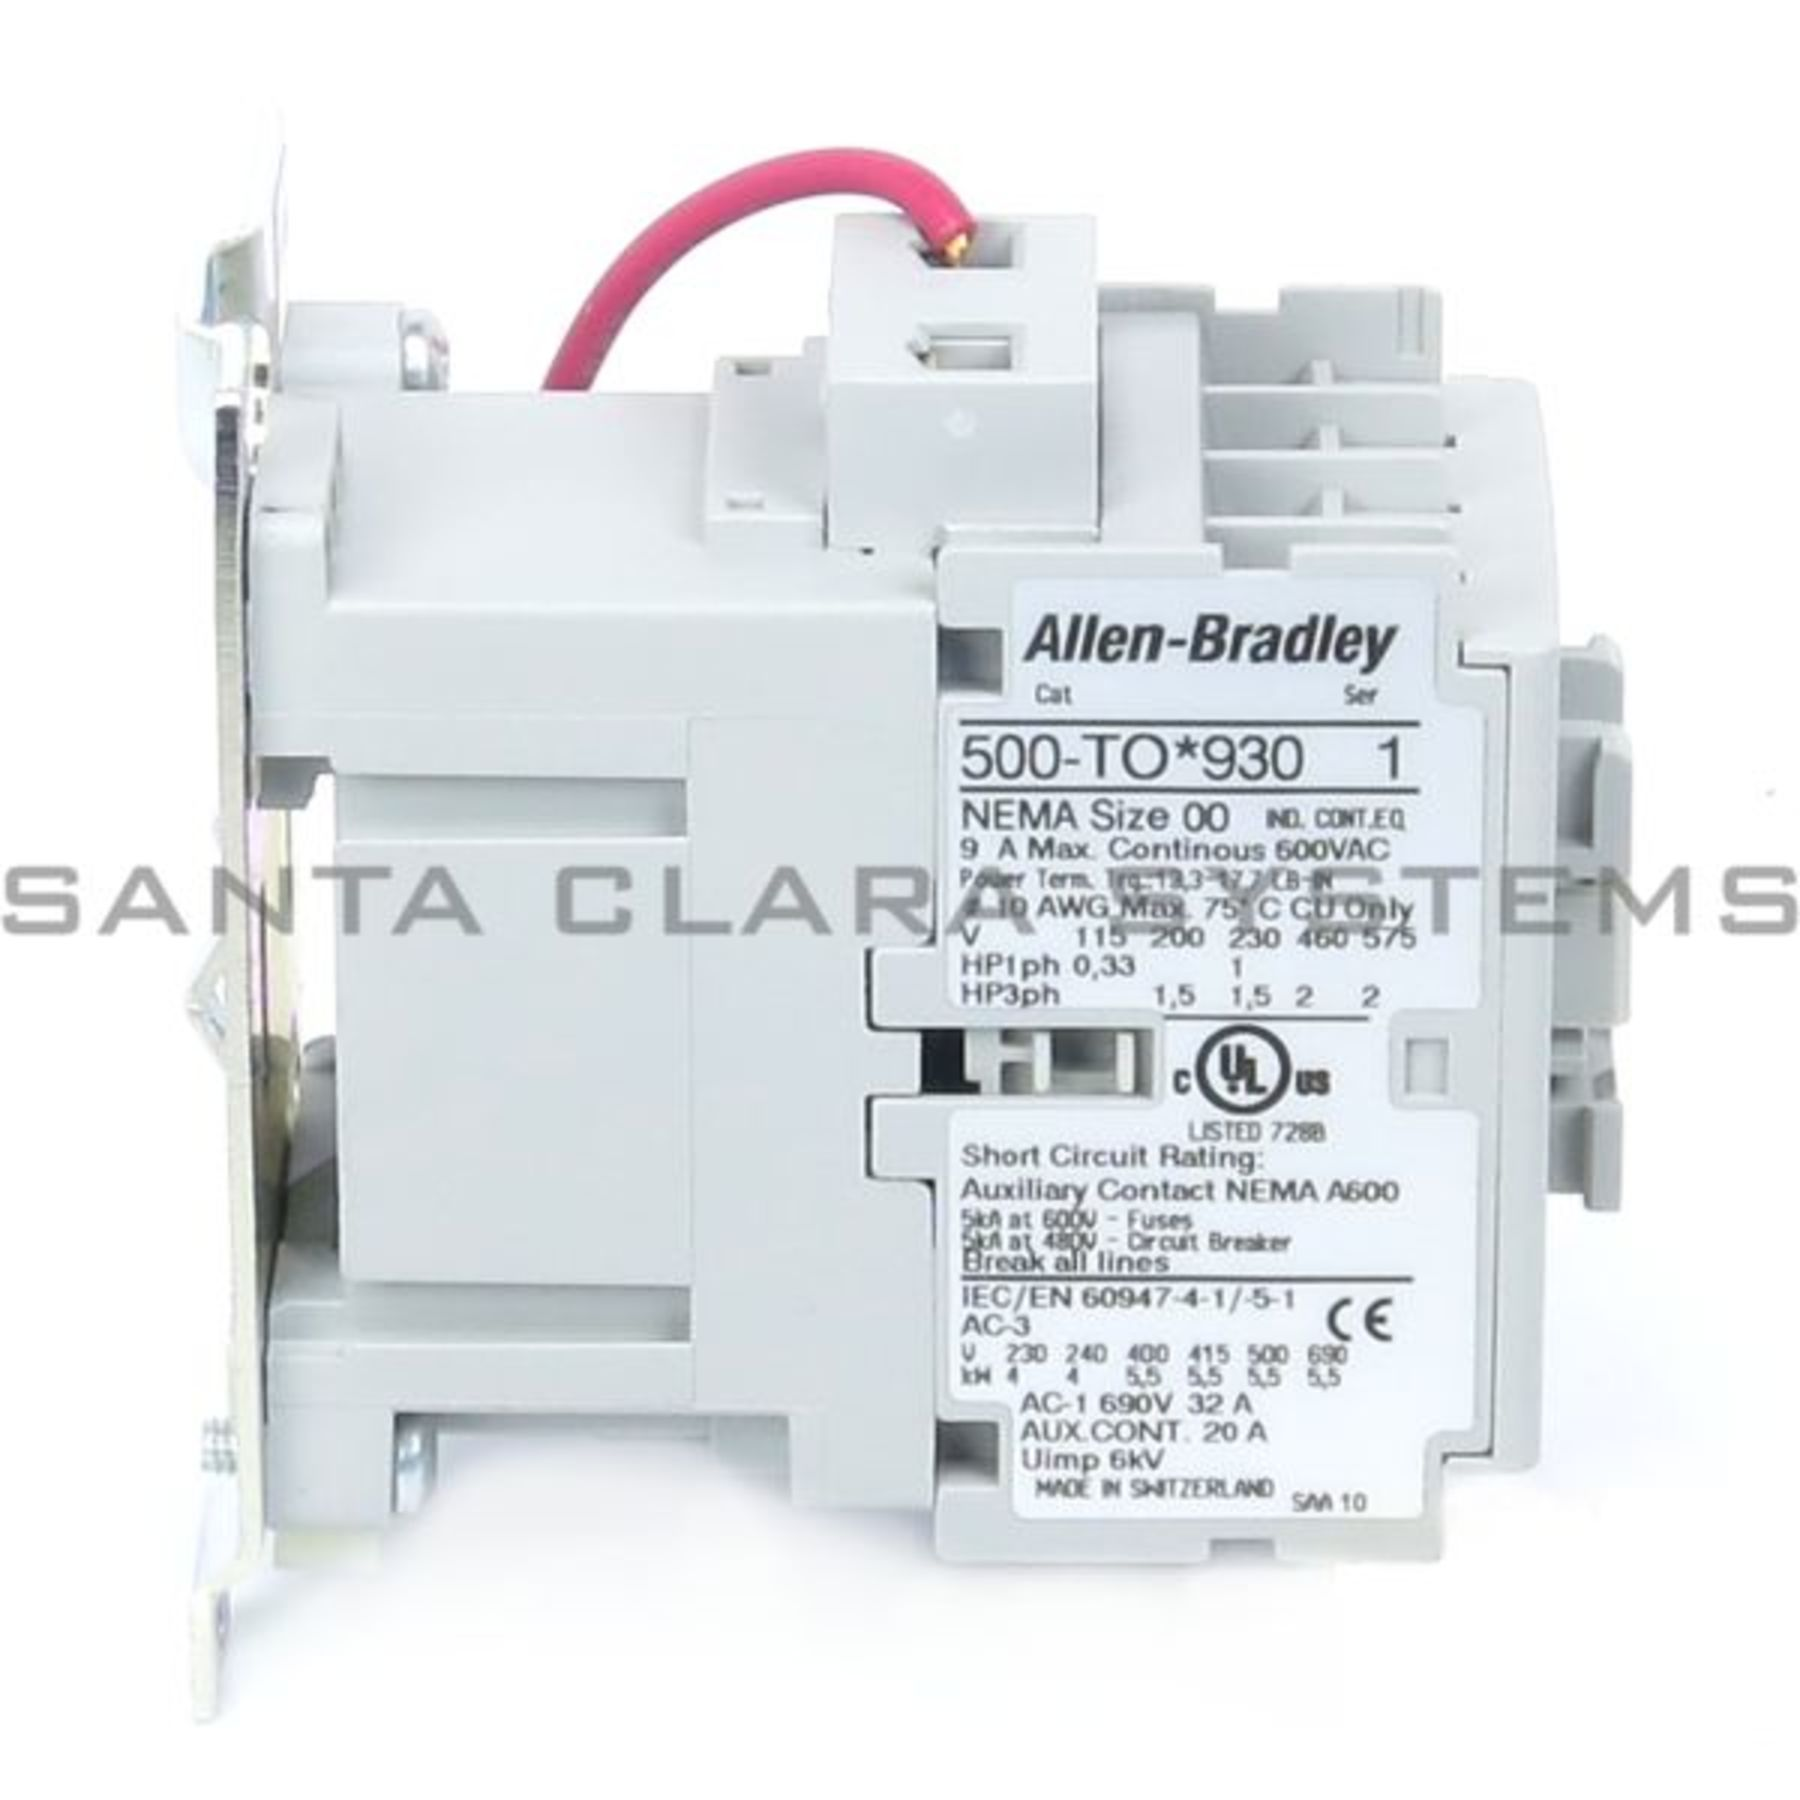 500 Tod930 Allen Bradley In Stock And Ready To Ship Santa Clara Understanding A Size 00 Contactor Wiring Product Image